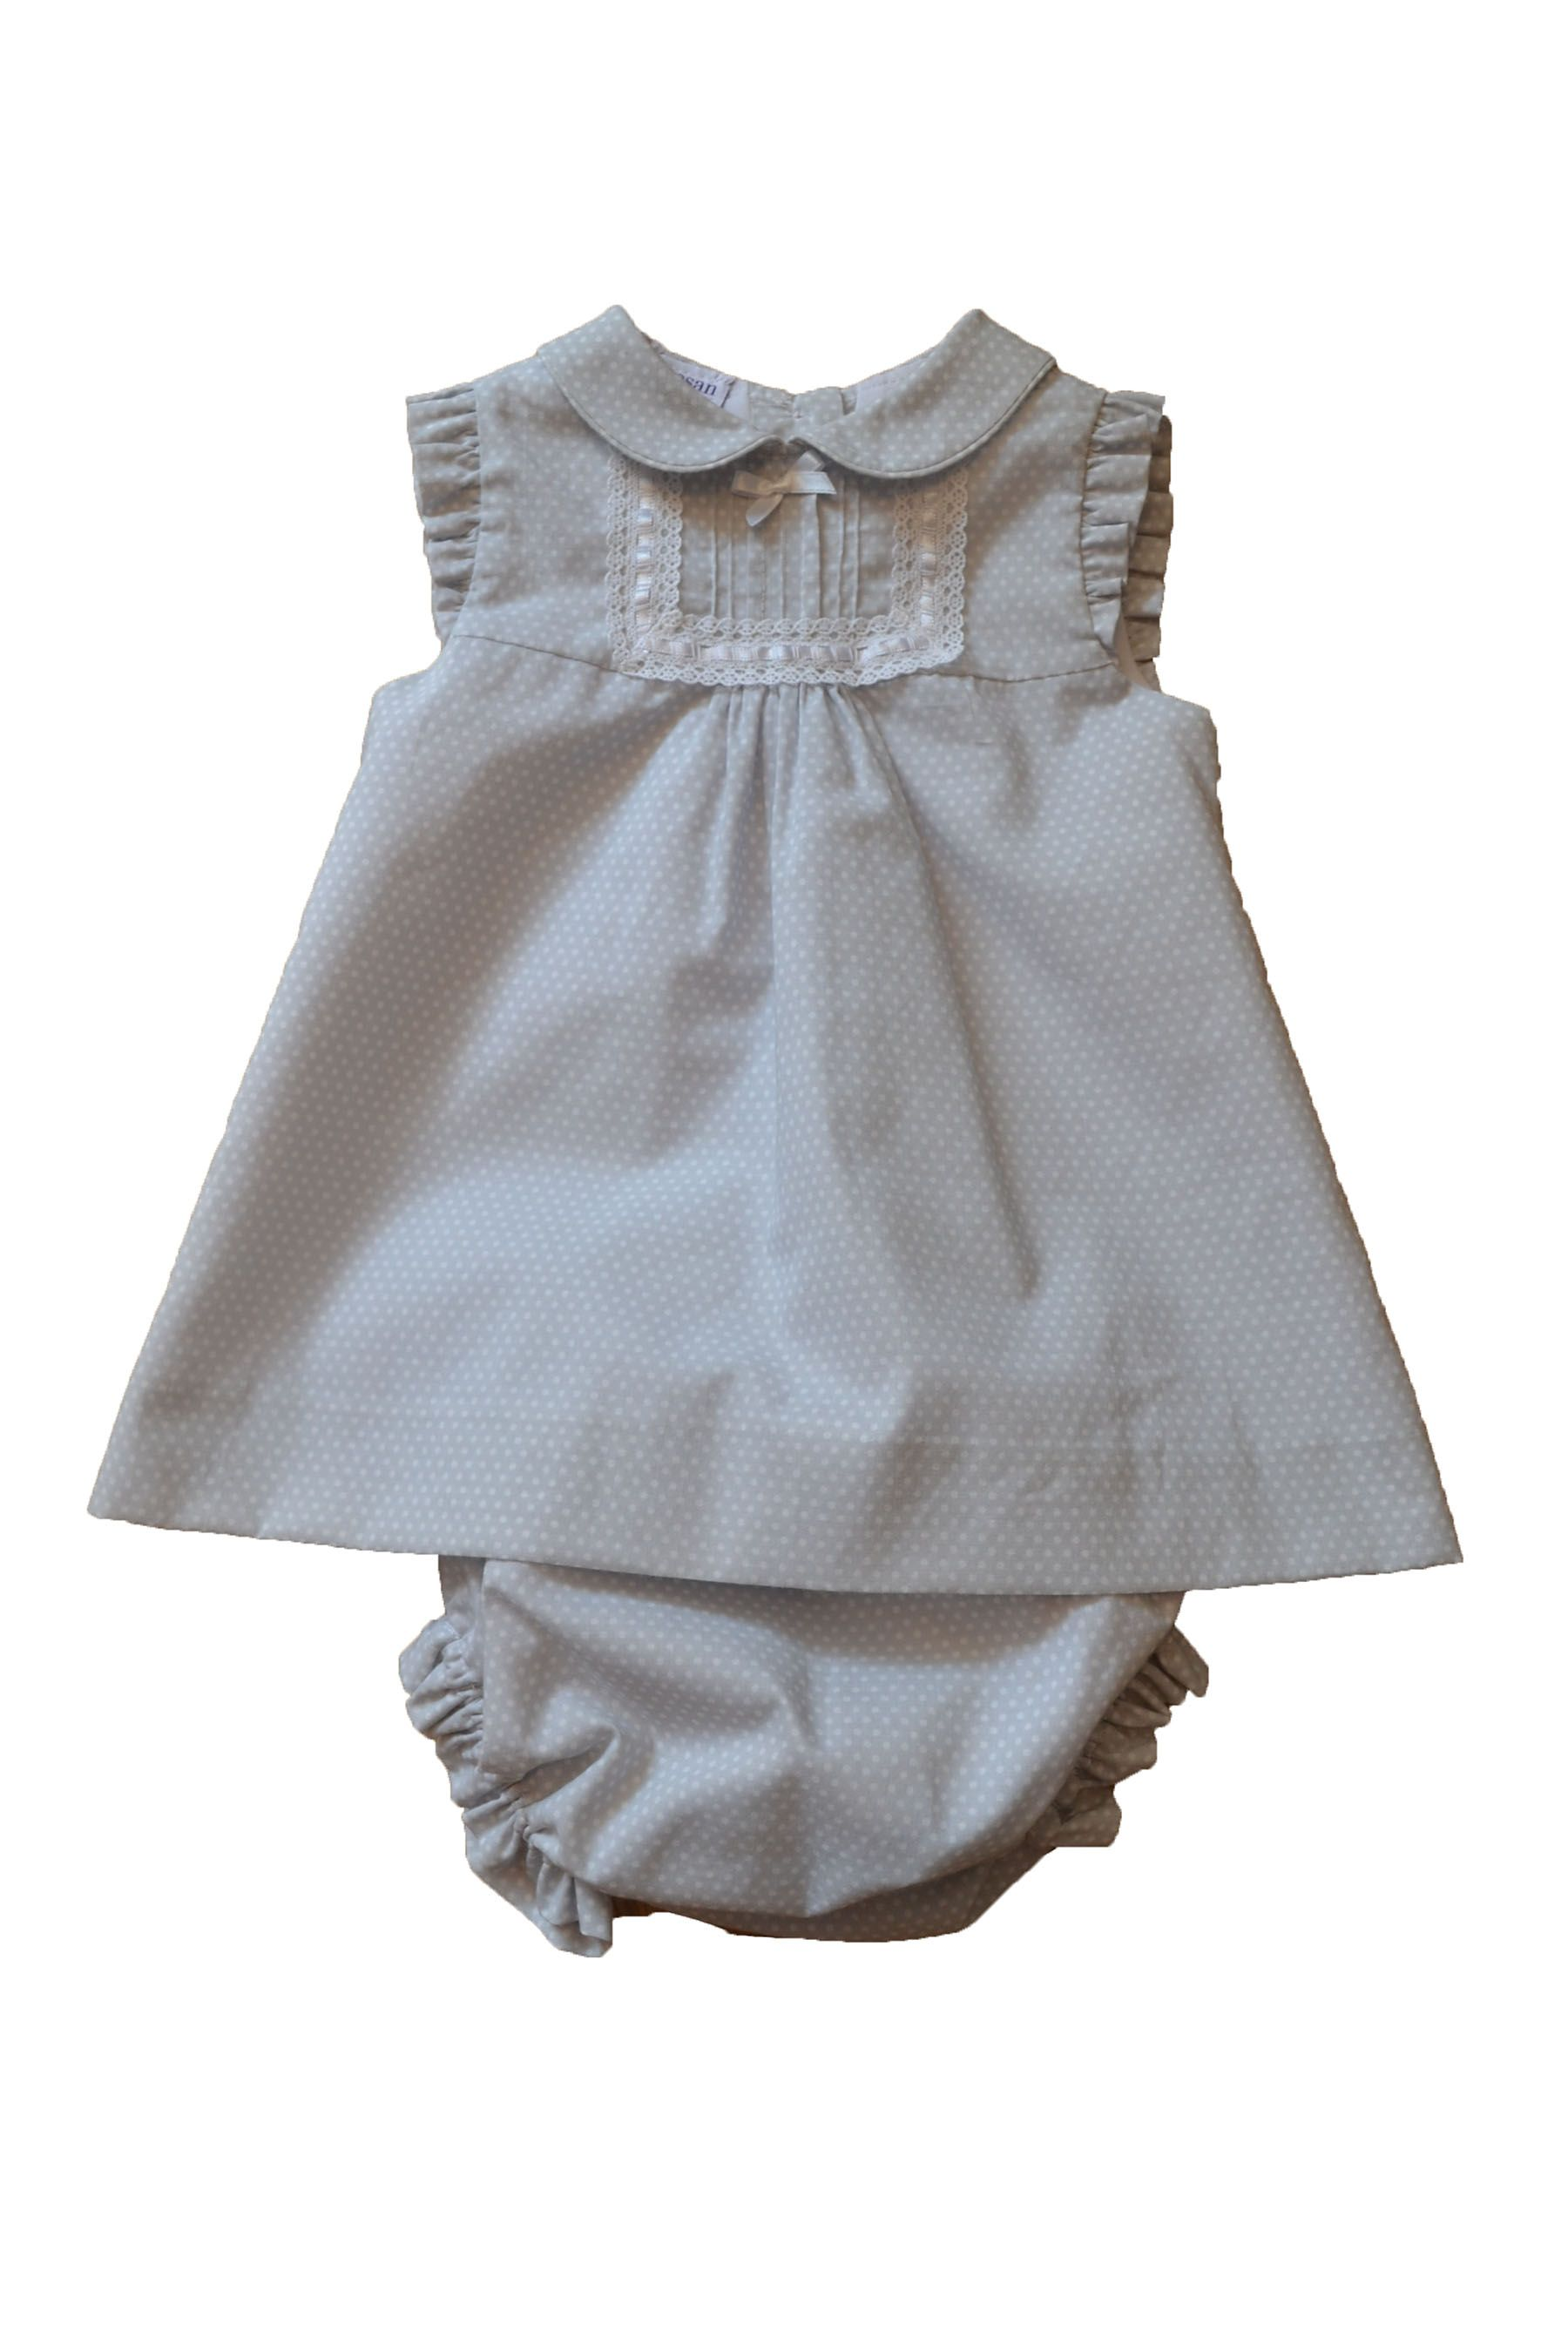 COSAN BABY LIGHT GREY DRESS & MATCHING NAPPYCOVER WITH WHITE DOTS